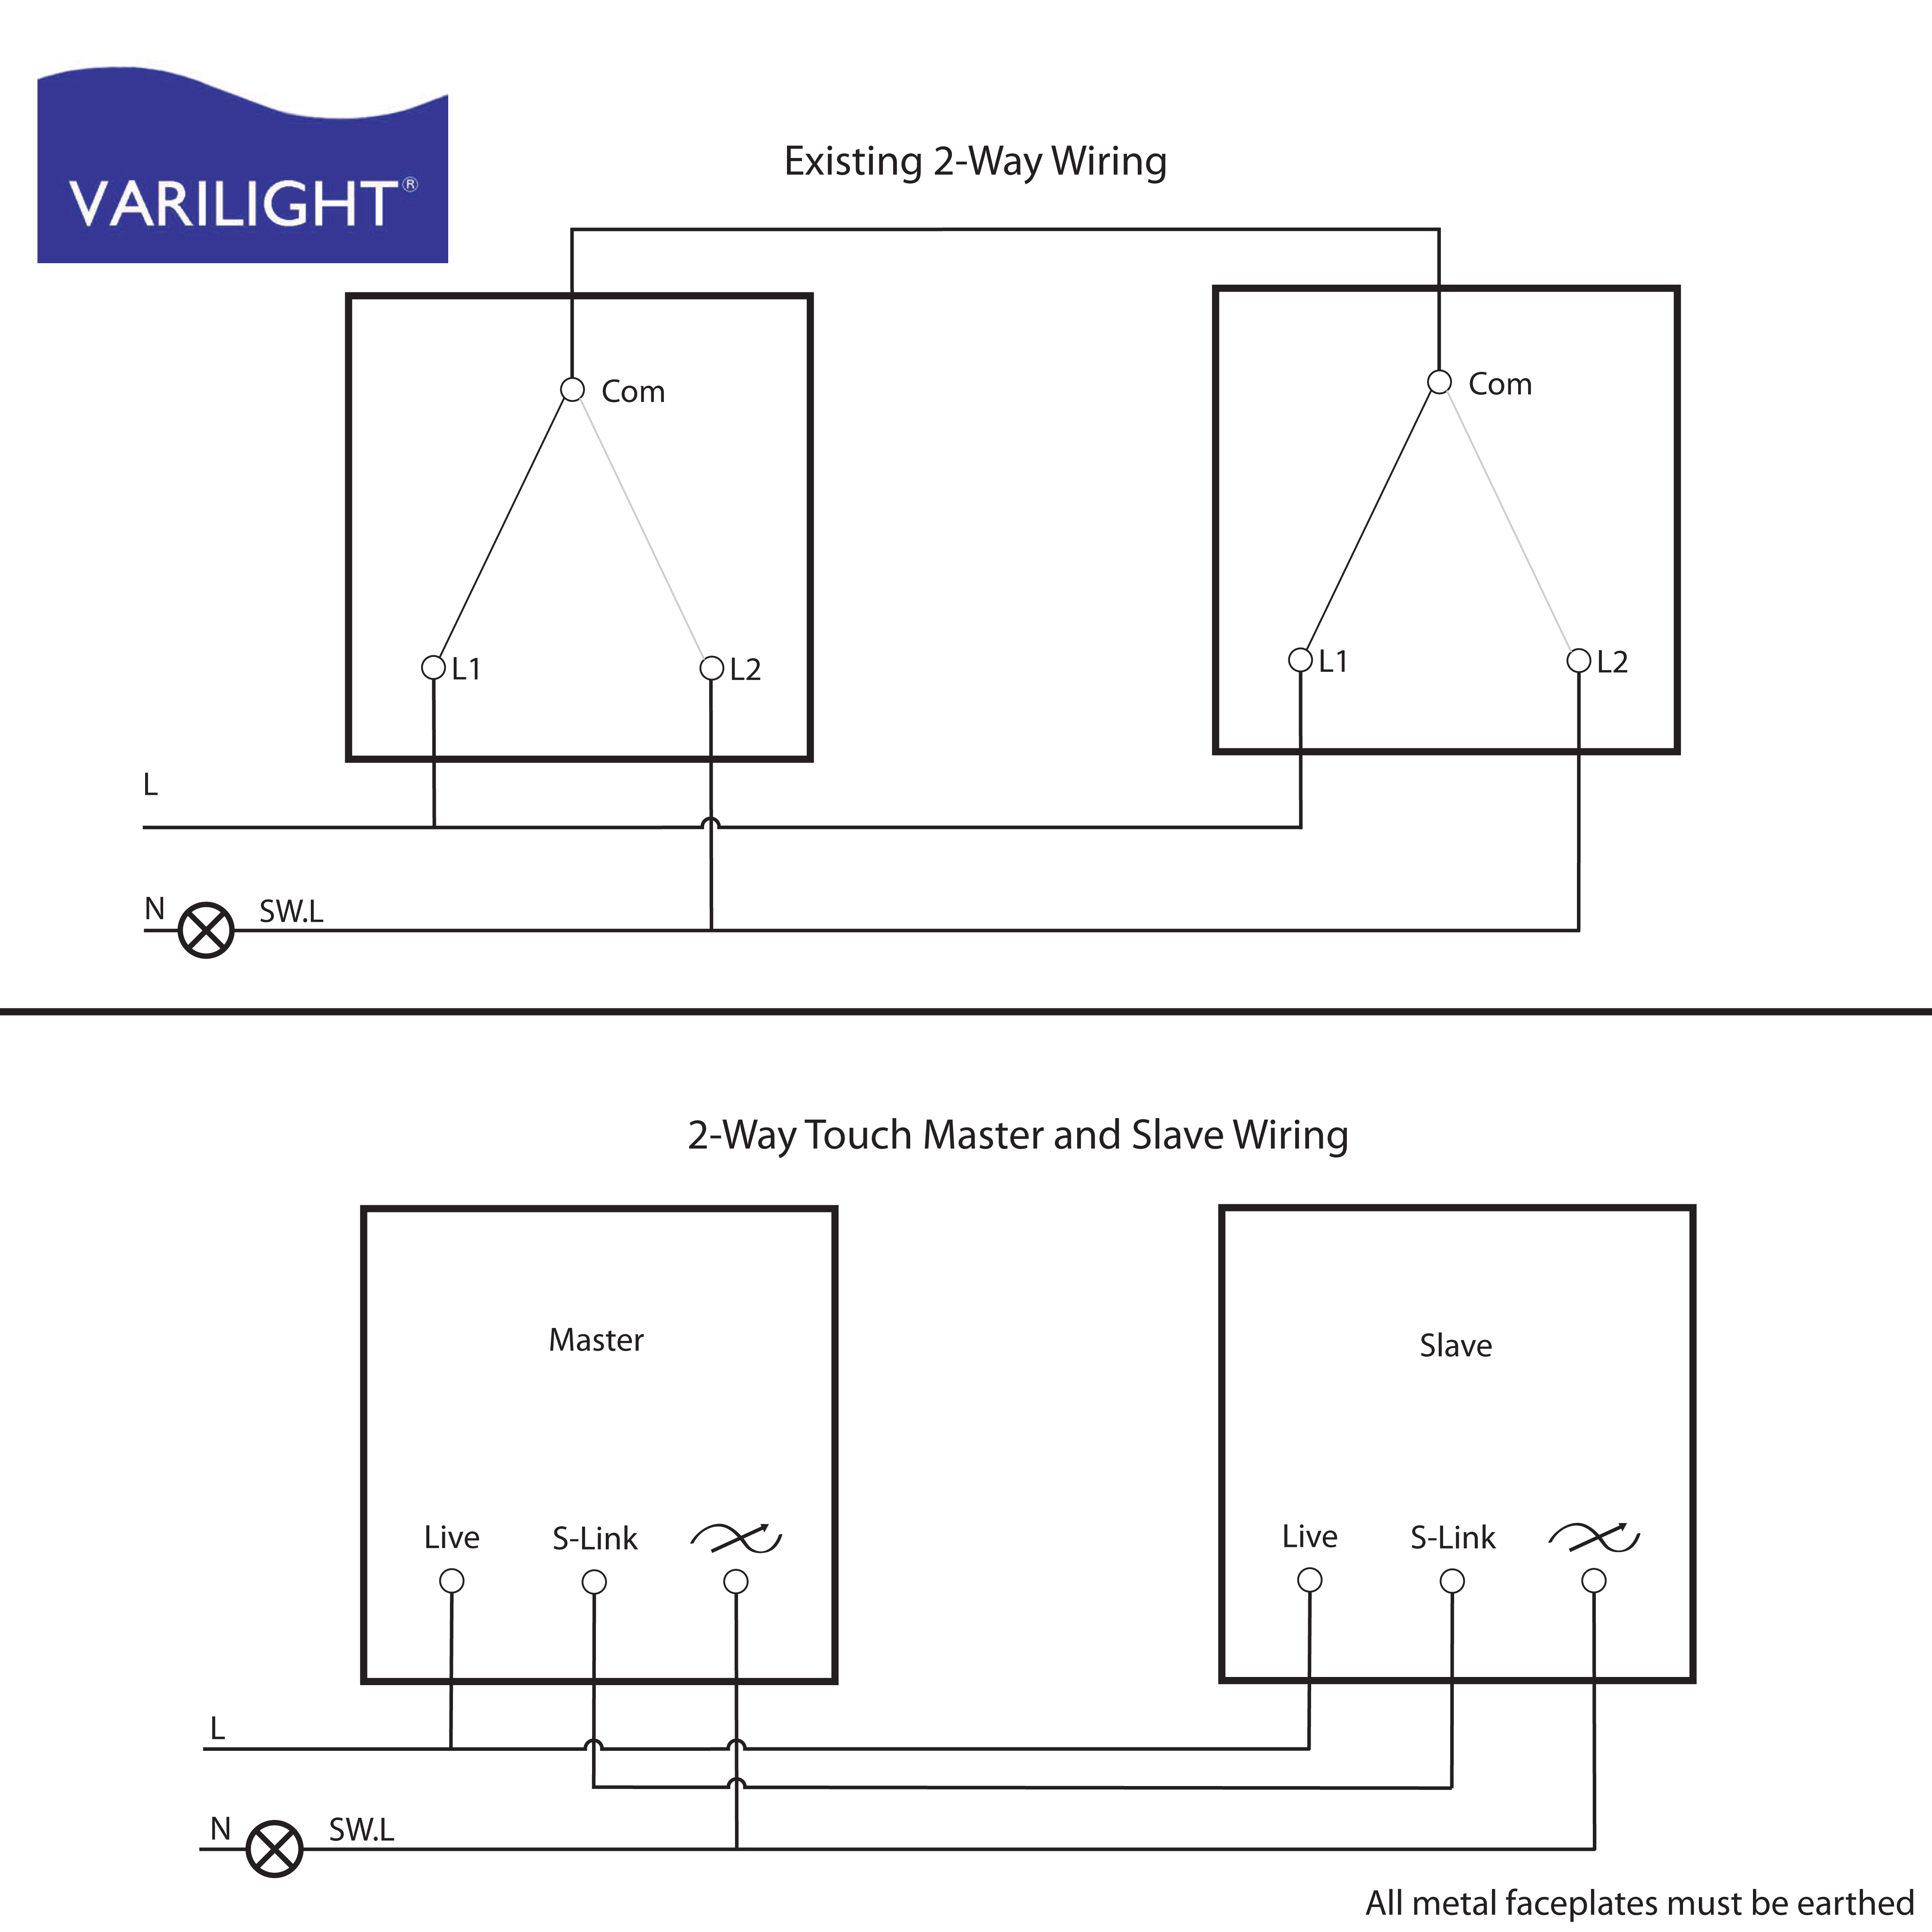 Varilight Wiring Diagrams - Dimming Switch Wiring Diagram